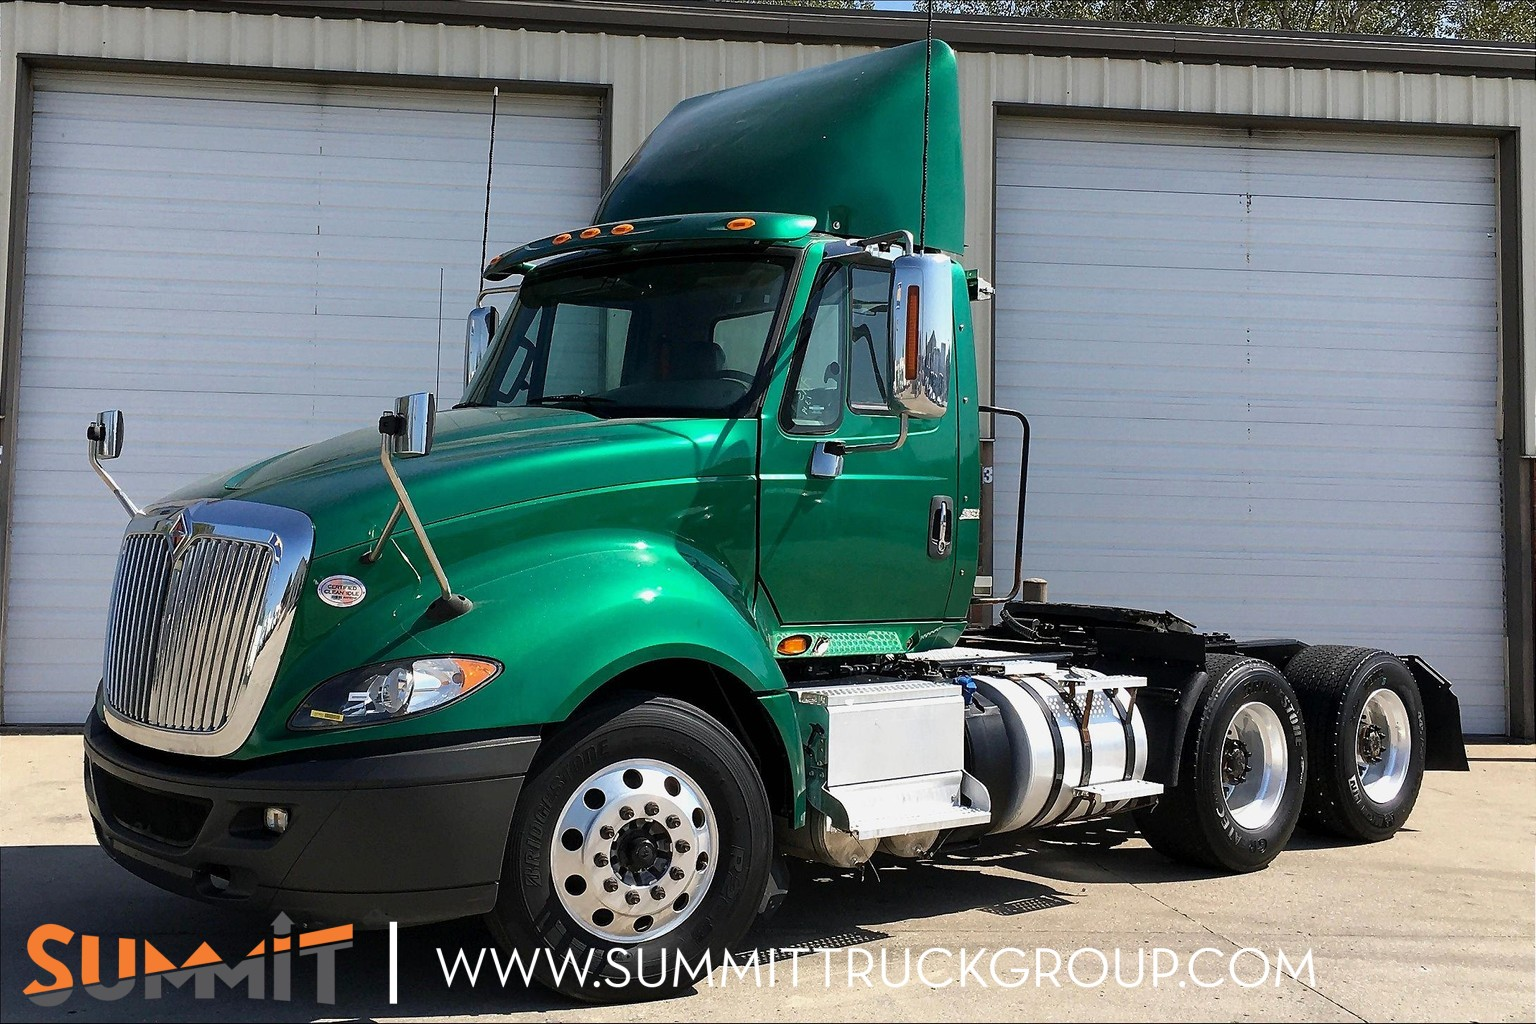 2016 International ProStar+ Day Cab 6x4, Tractor #135N201739 - photo 1